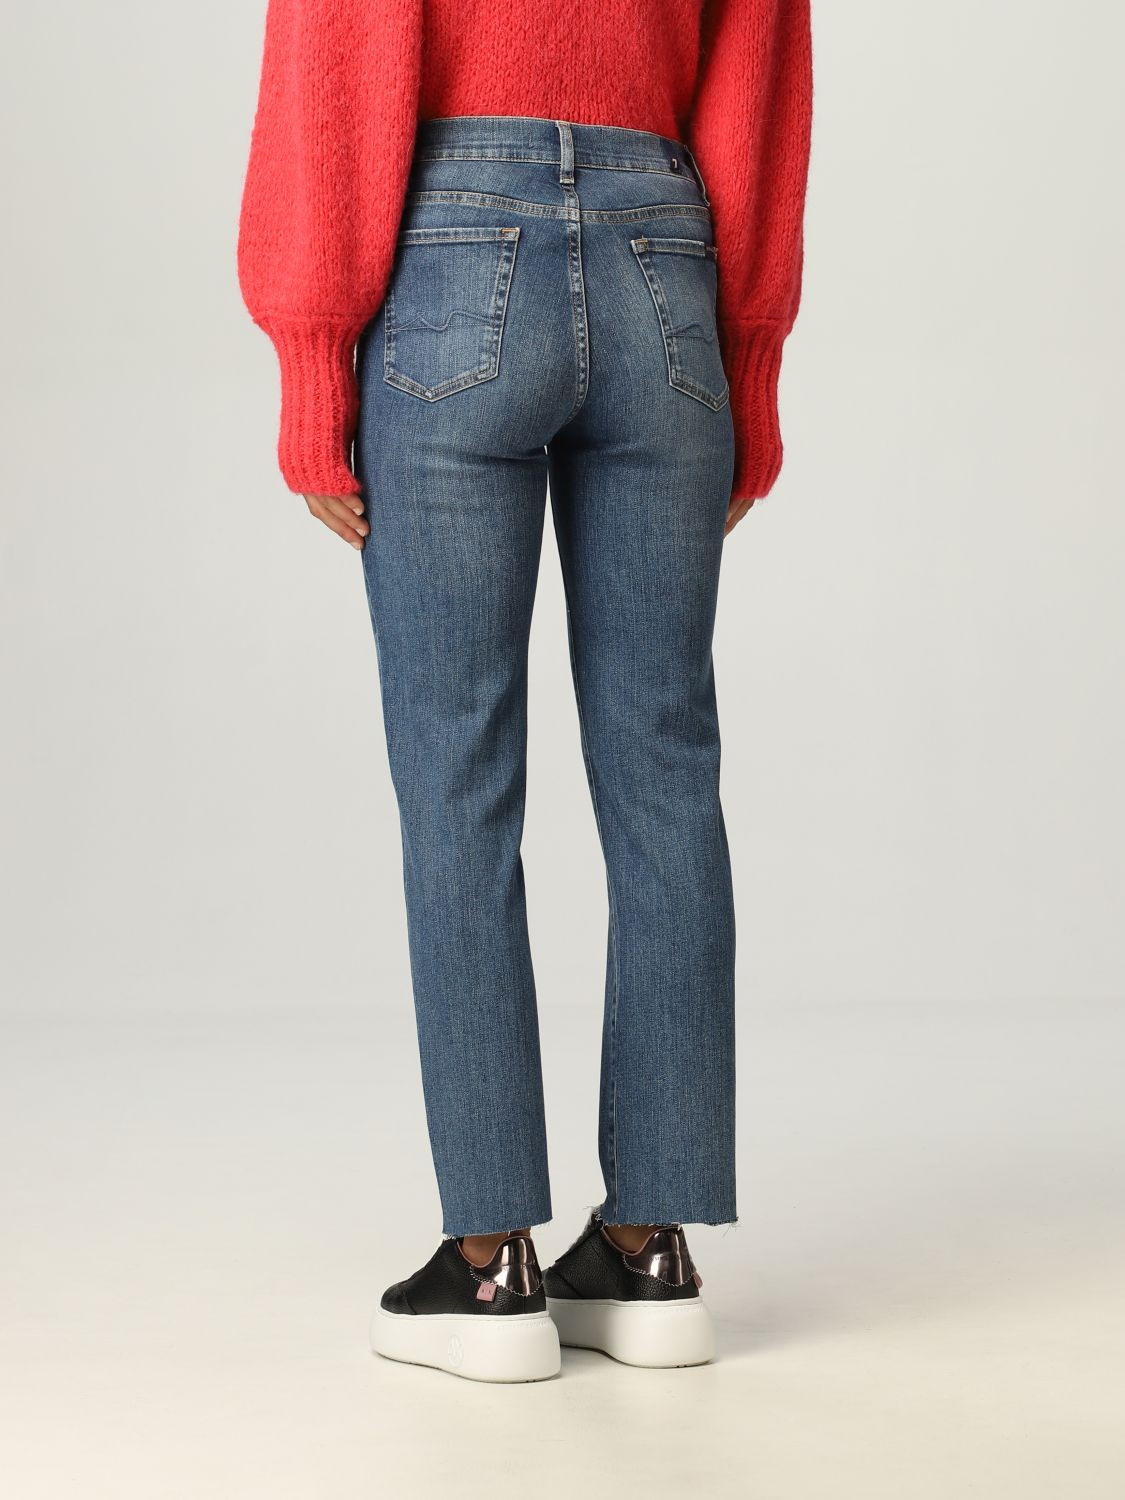 Jeans 7 For All Mankind: Jeans donna 7 For All Mankind blue 2